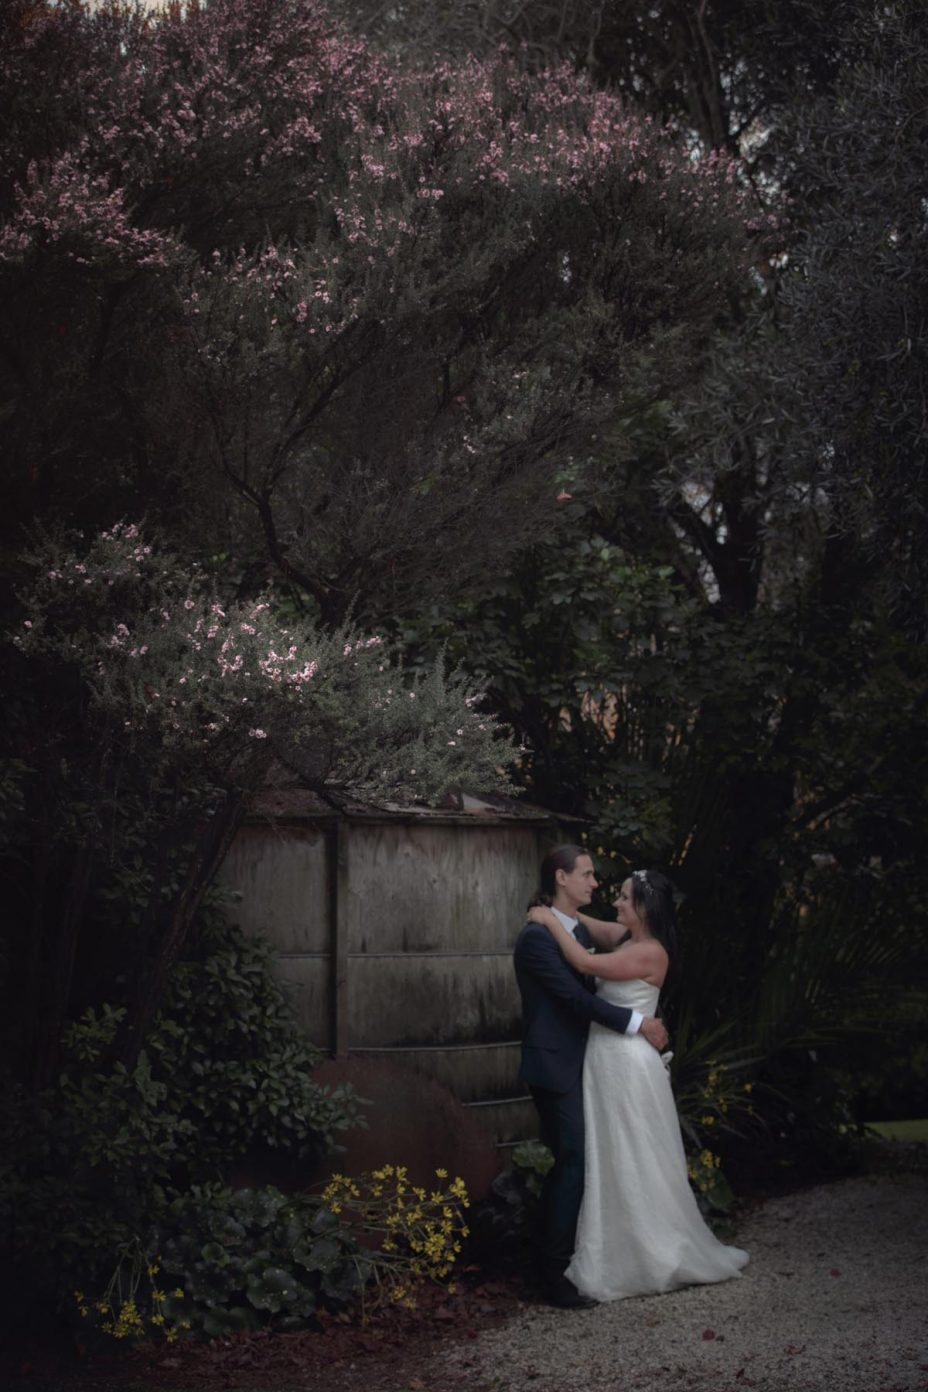 bride and groom embrace in the gardens at Kumeu Valley Estate